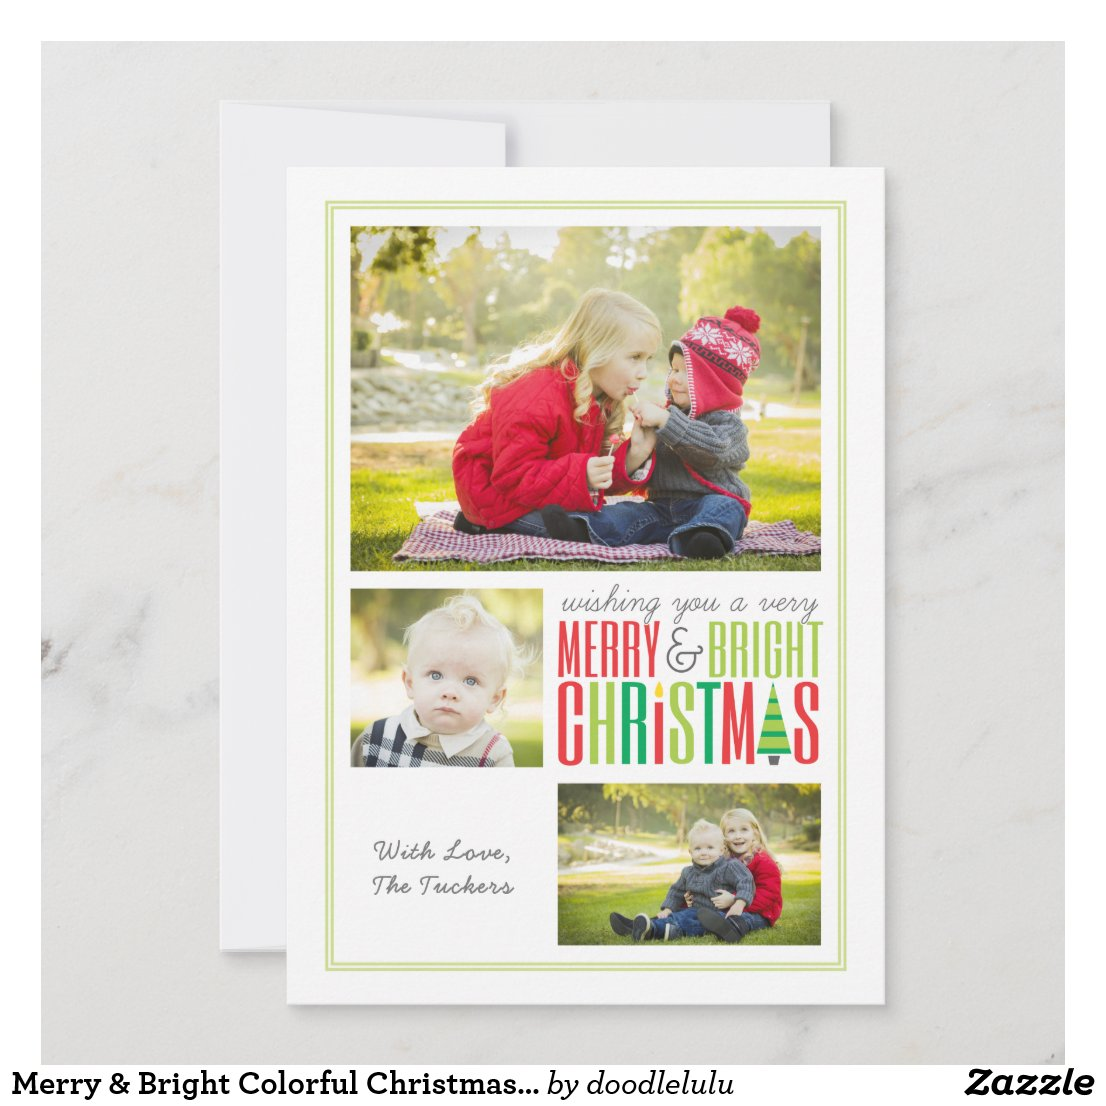 Merry & Bright Colorful Christmas Card - 3 Photo